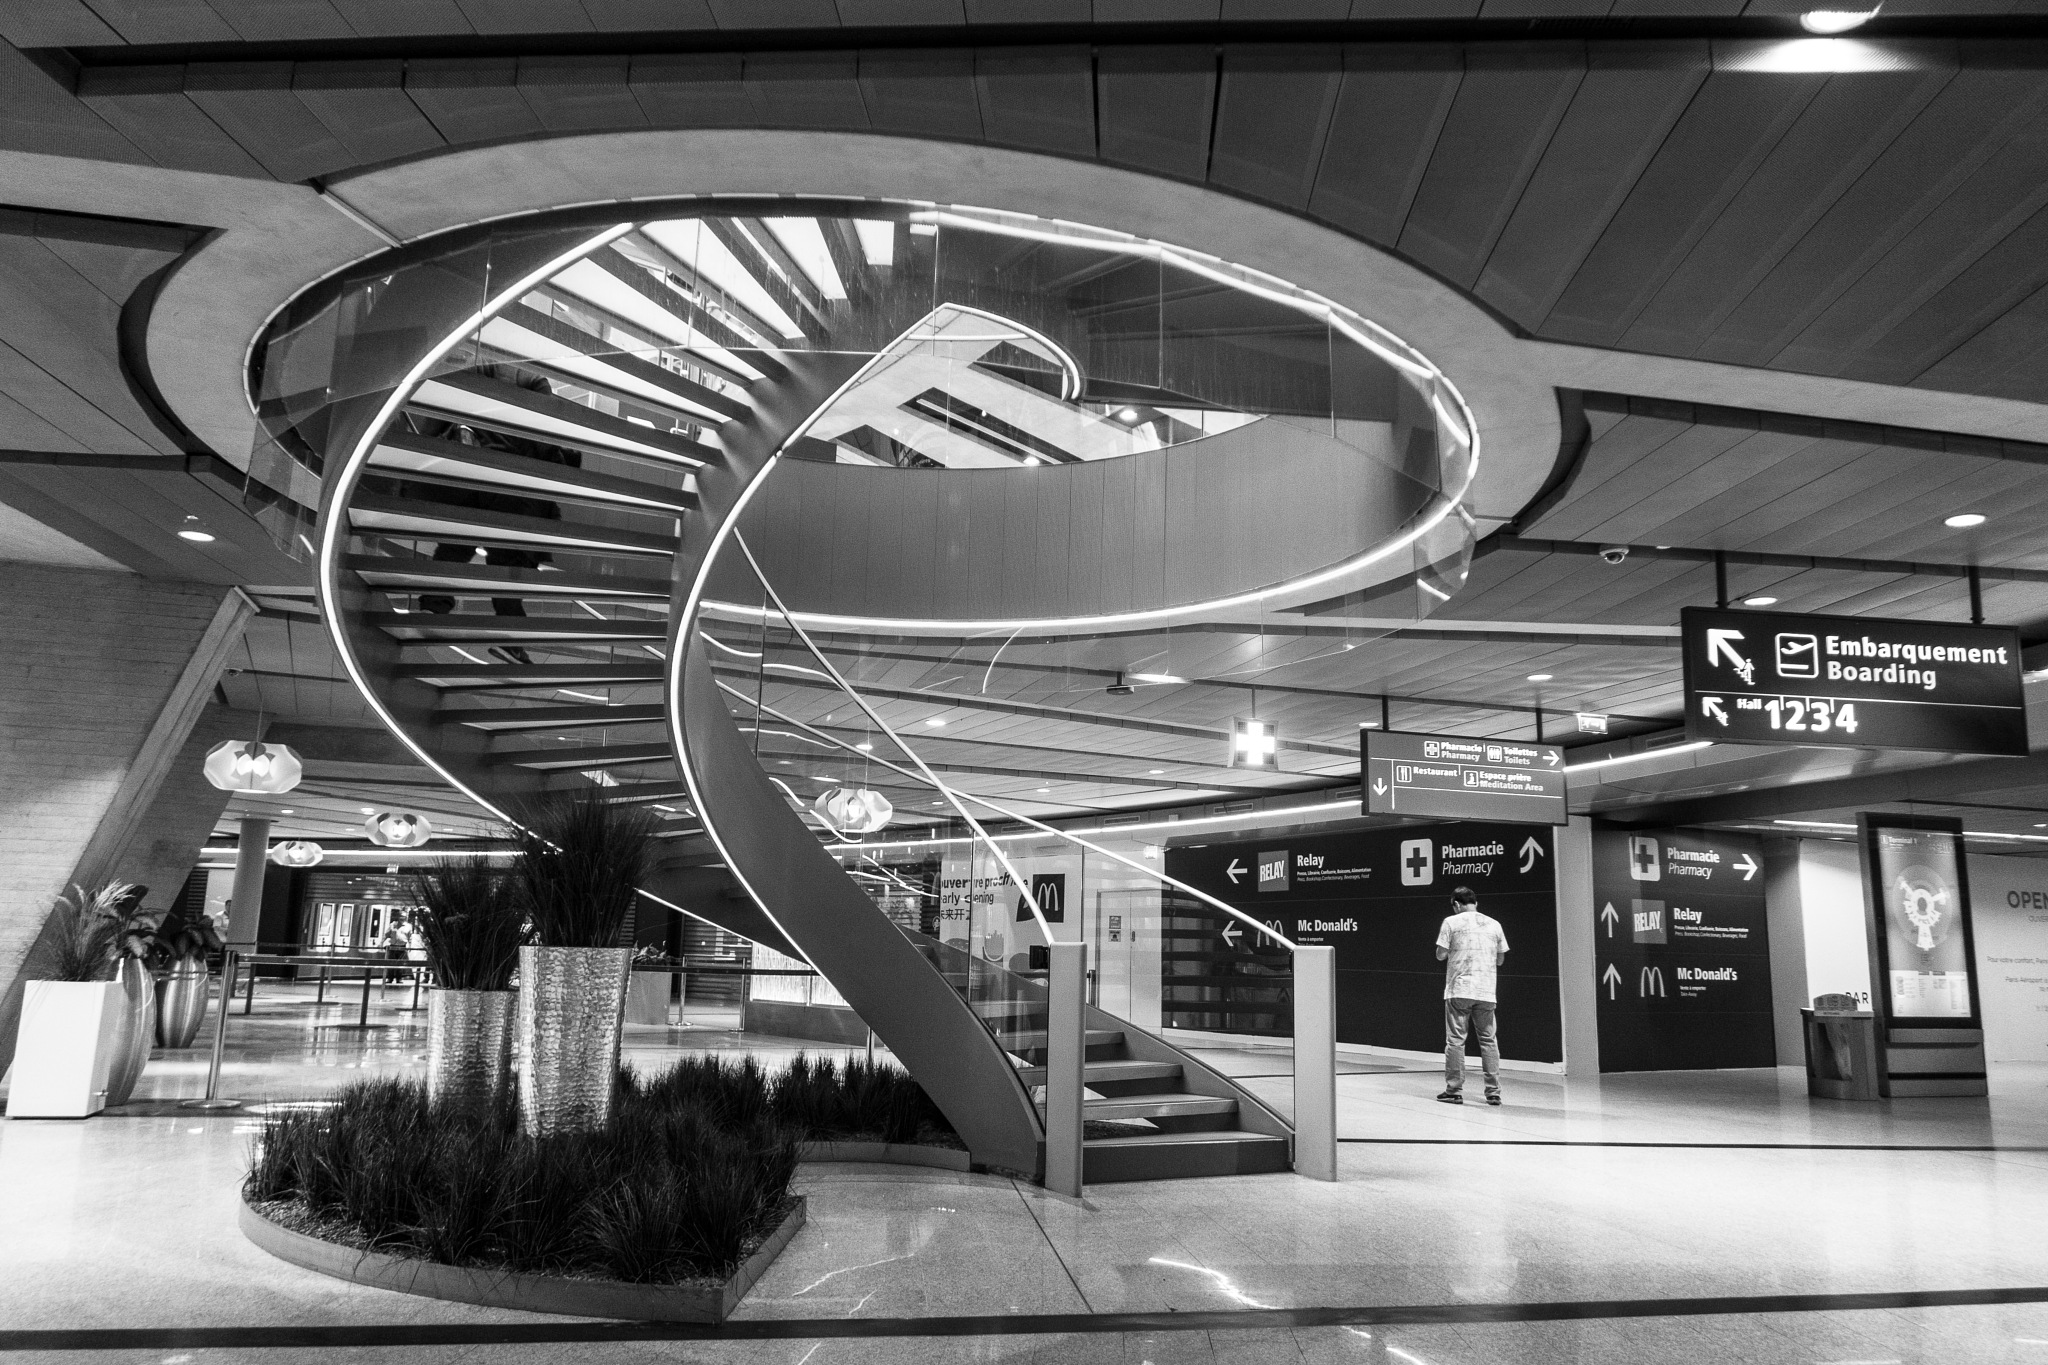 Airport In France by Patrick PAUMARD